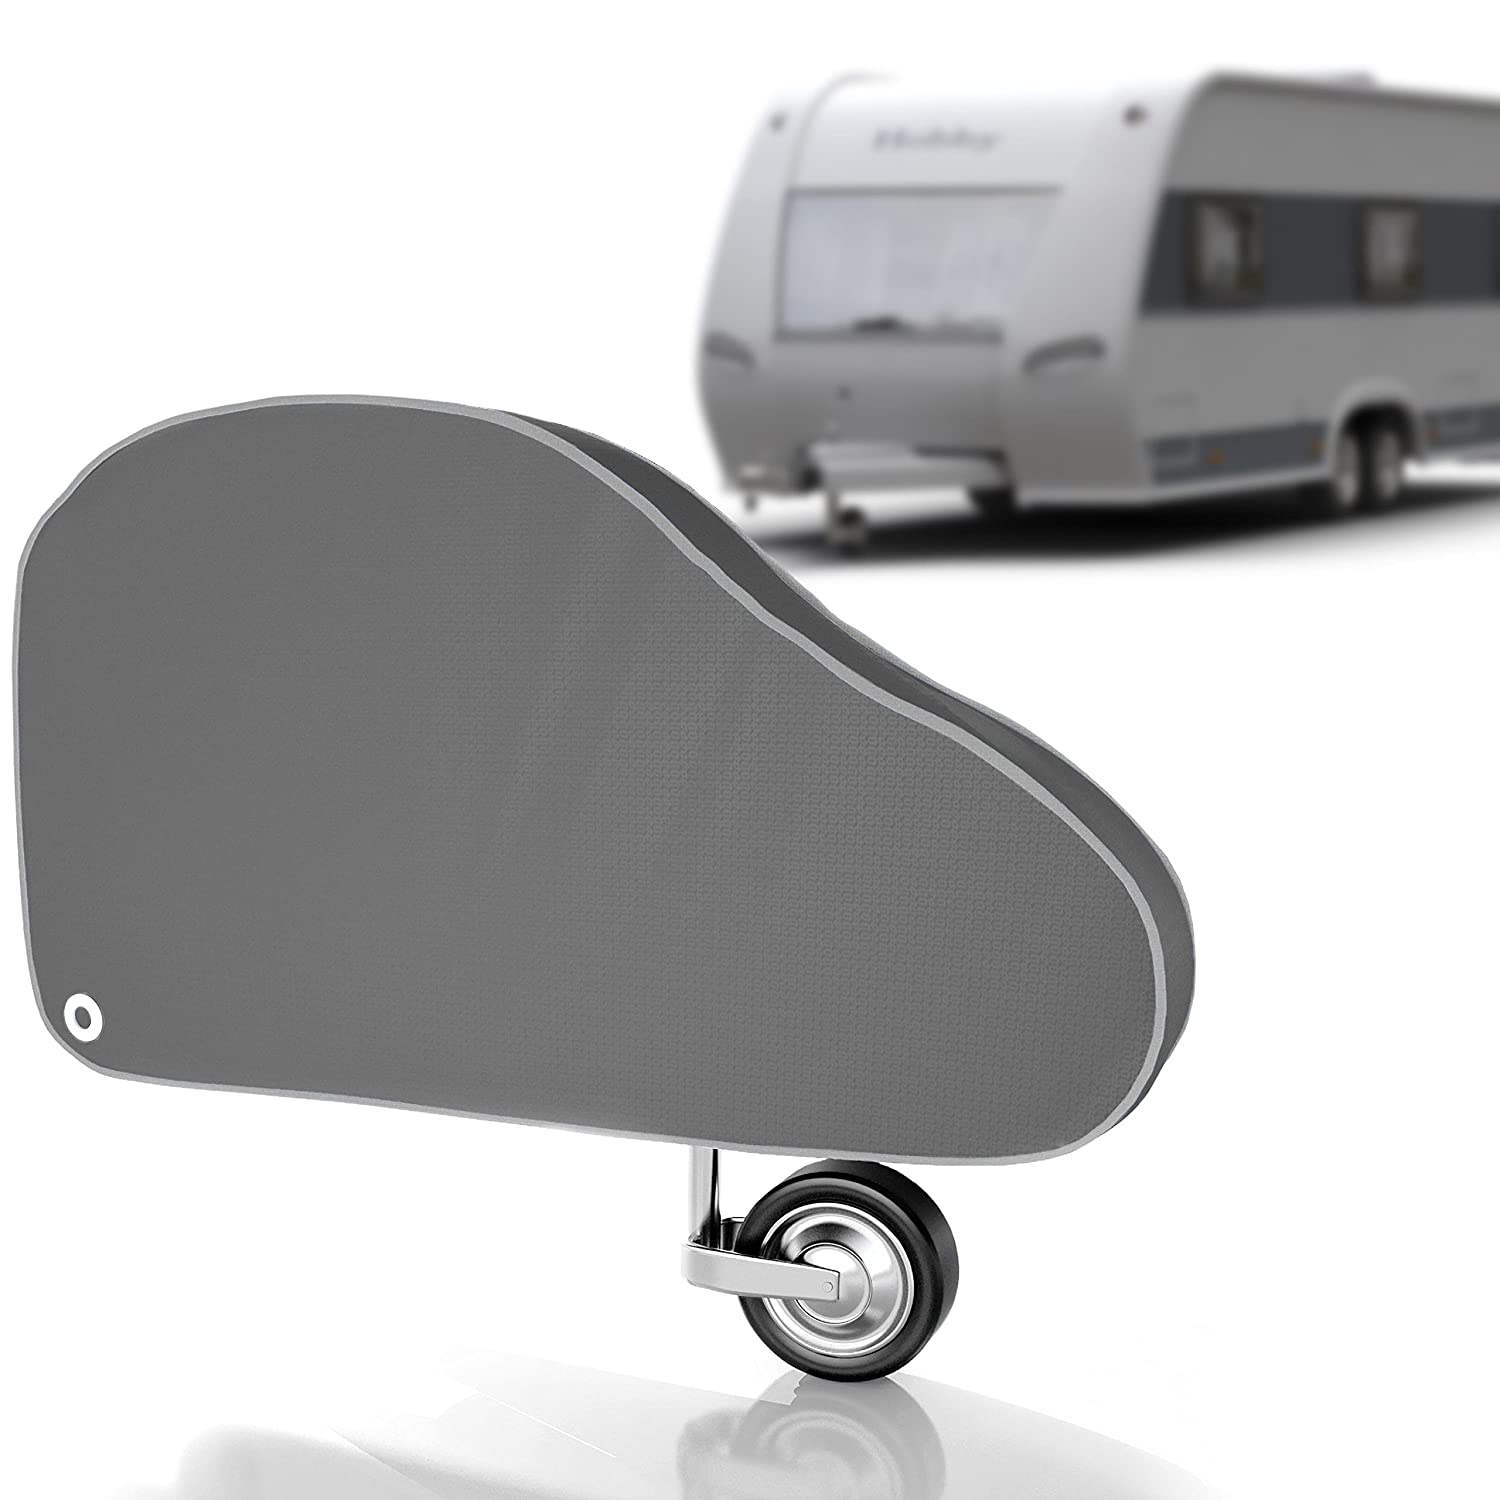 Contifix universal drawbar cover for caravans and trailer, winter-proof and innovative 4-layer composite material